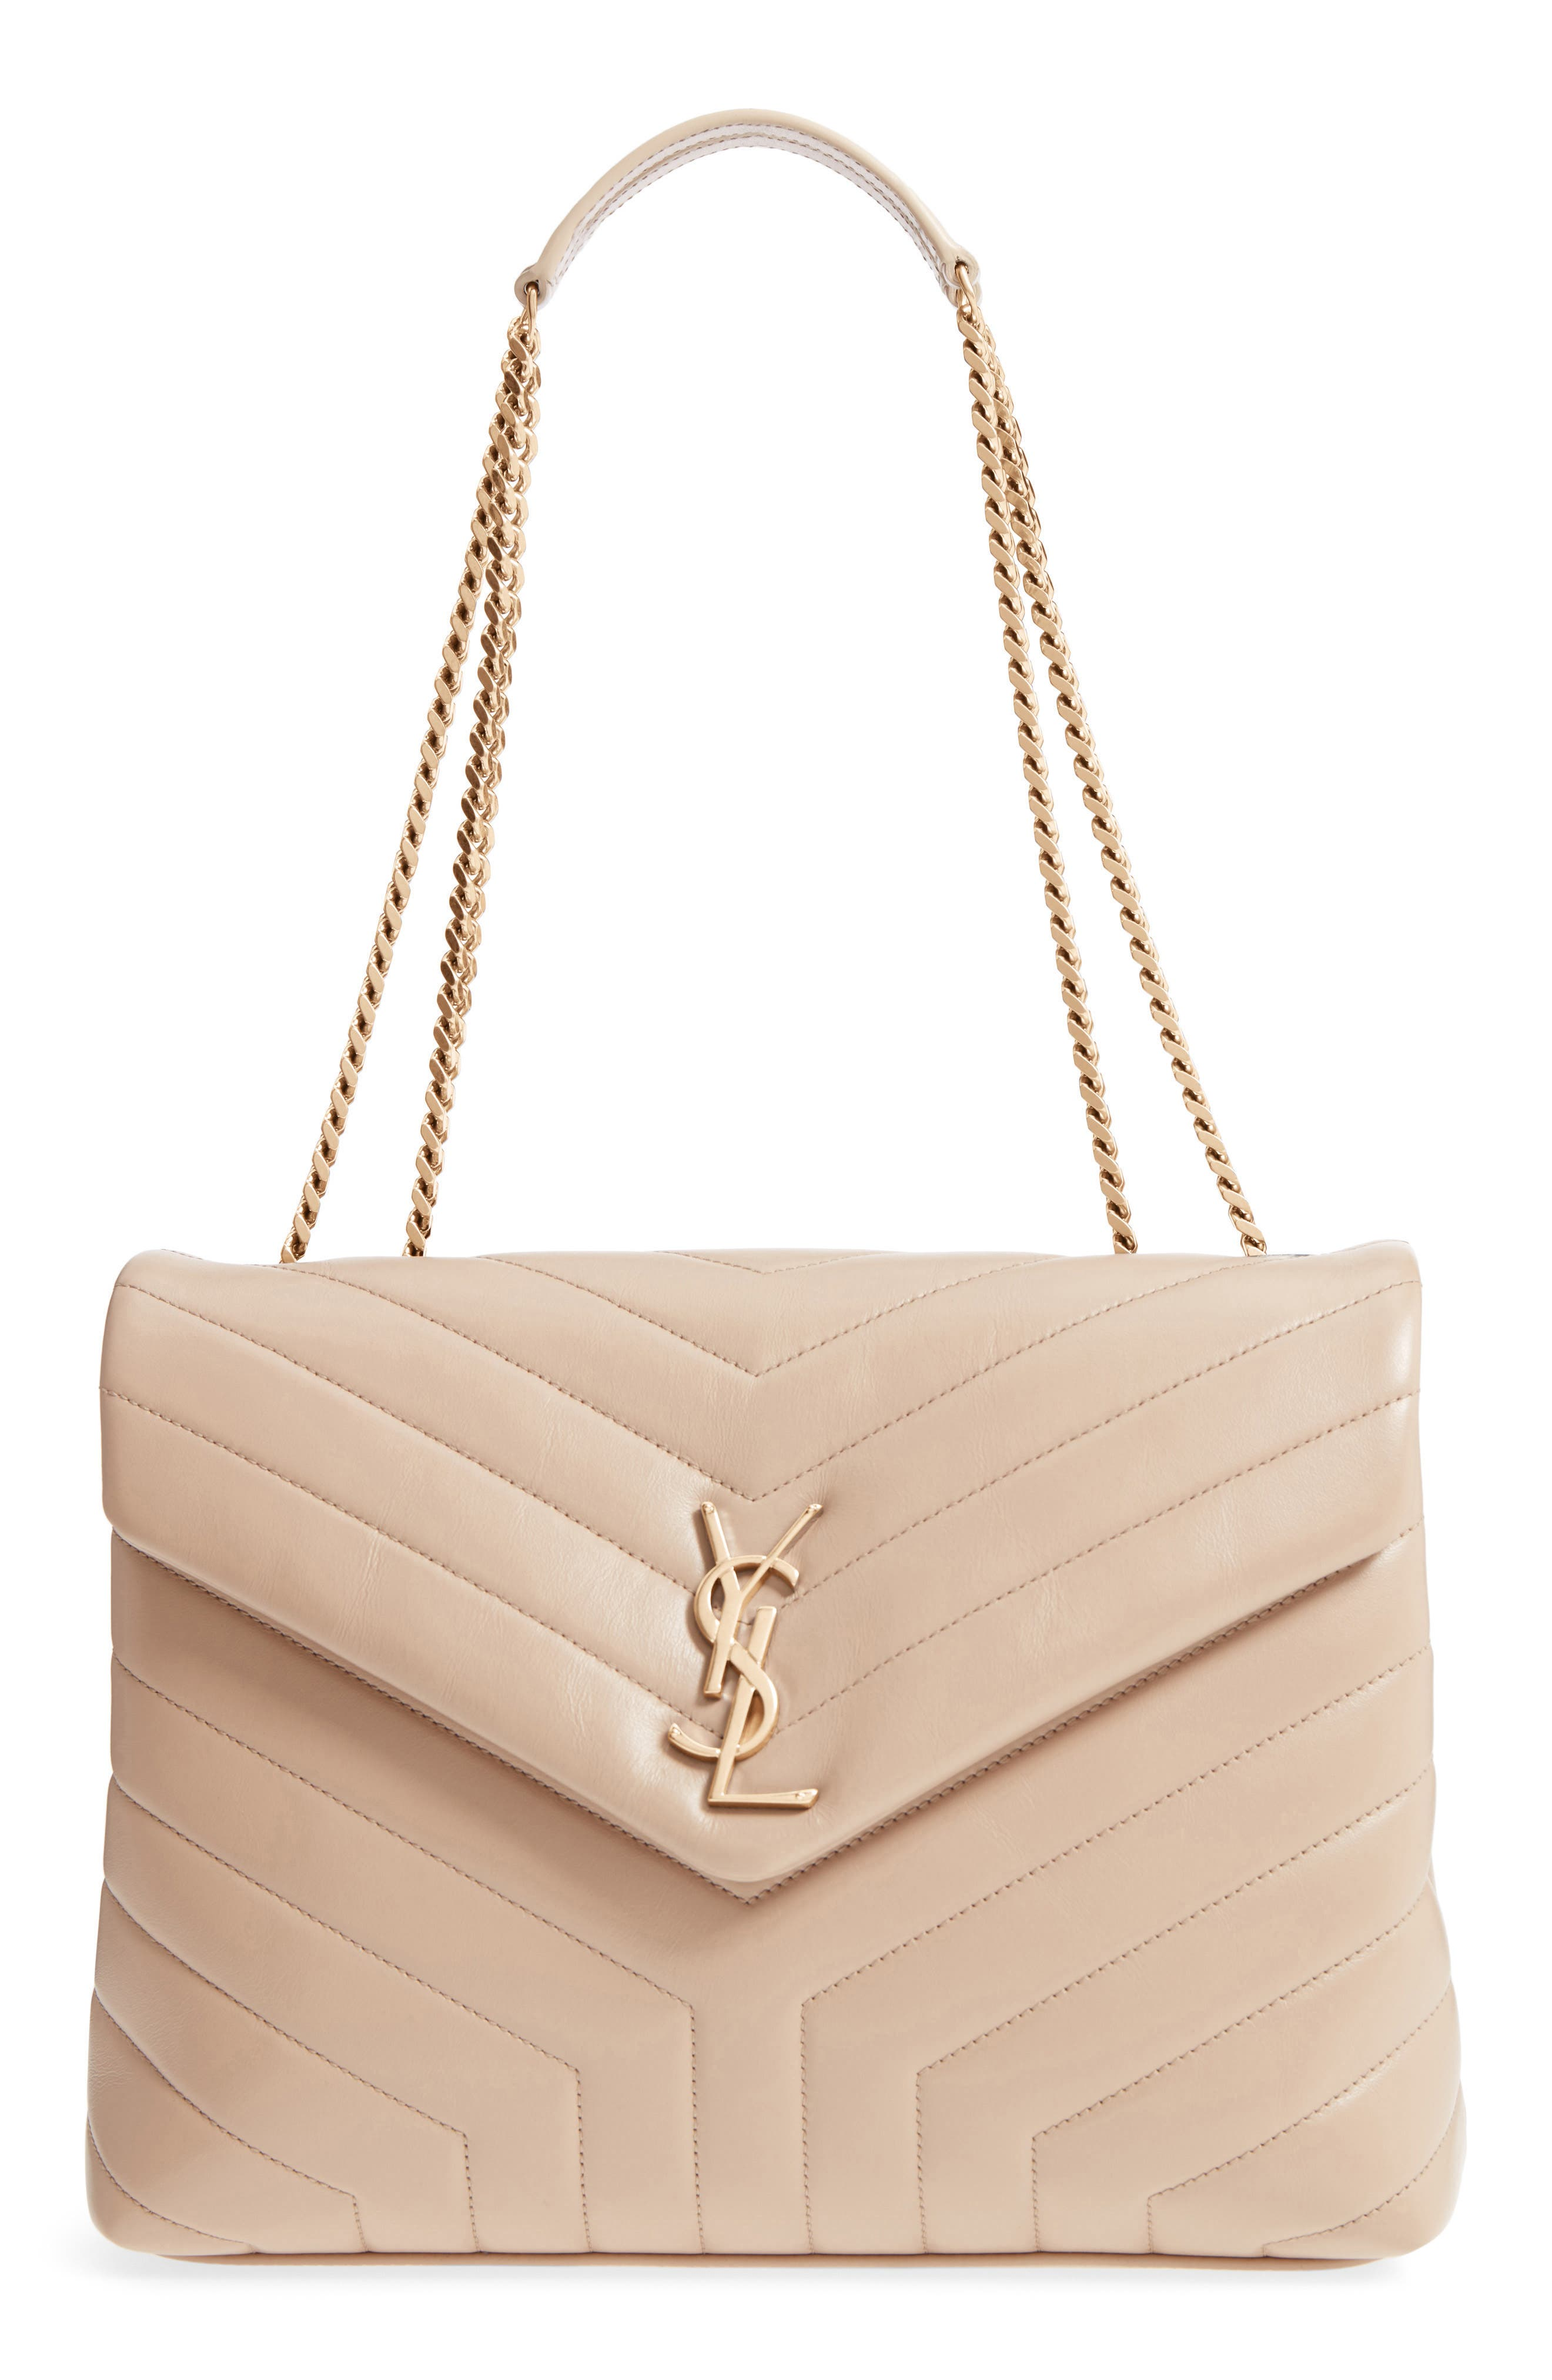 SAINT LAURENT, Medium Loulou Matelassé Calfskin Leather Shoulder Bag, Main thumbnail 1, color, LIGHT NATURAL